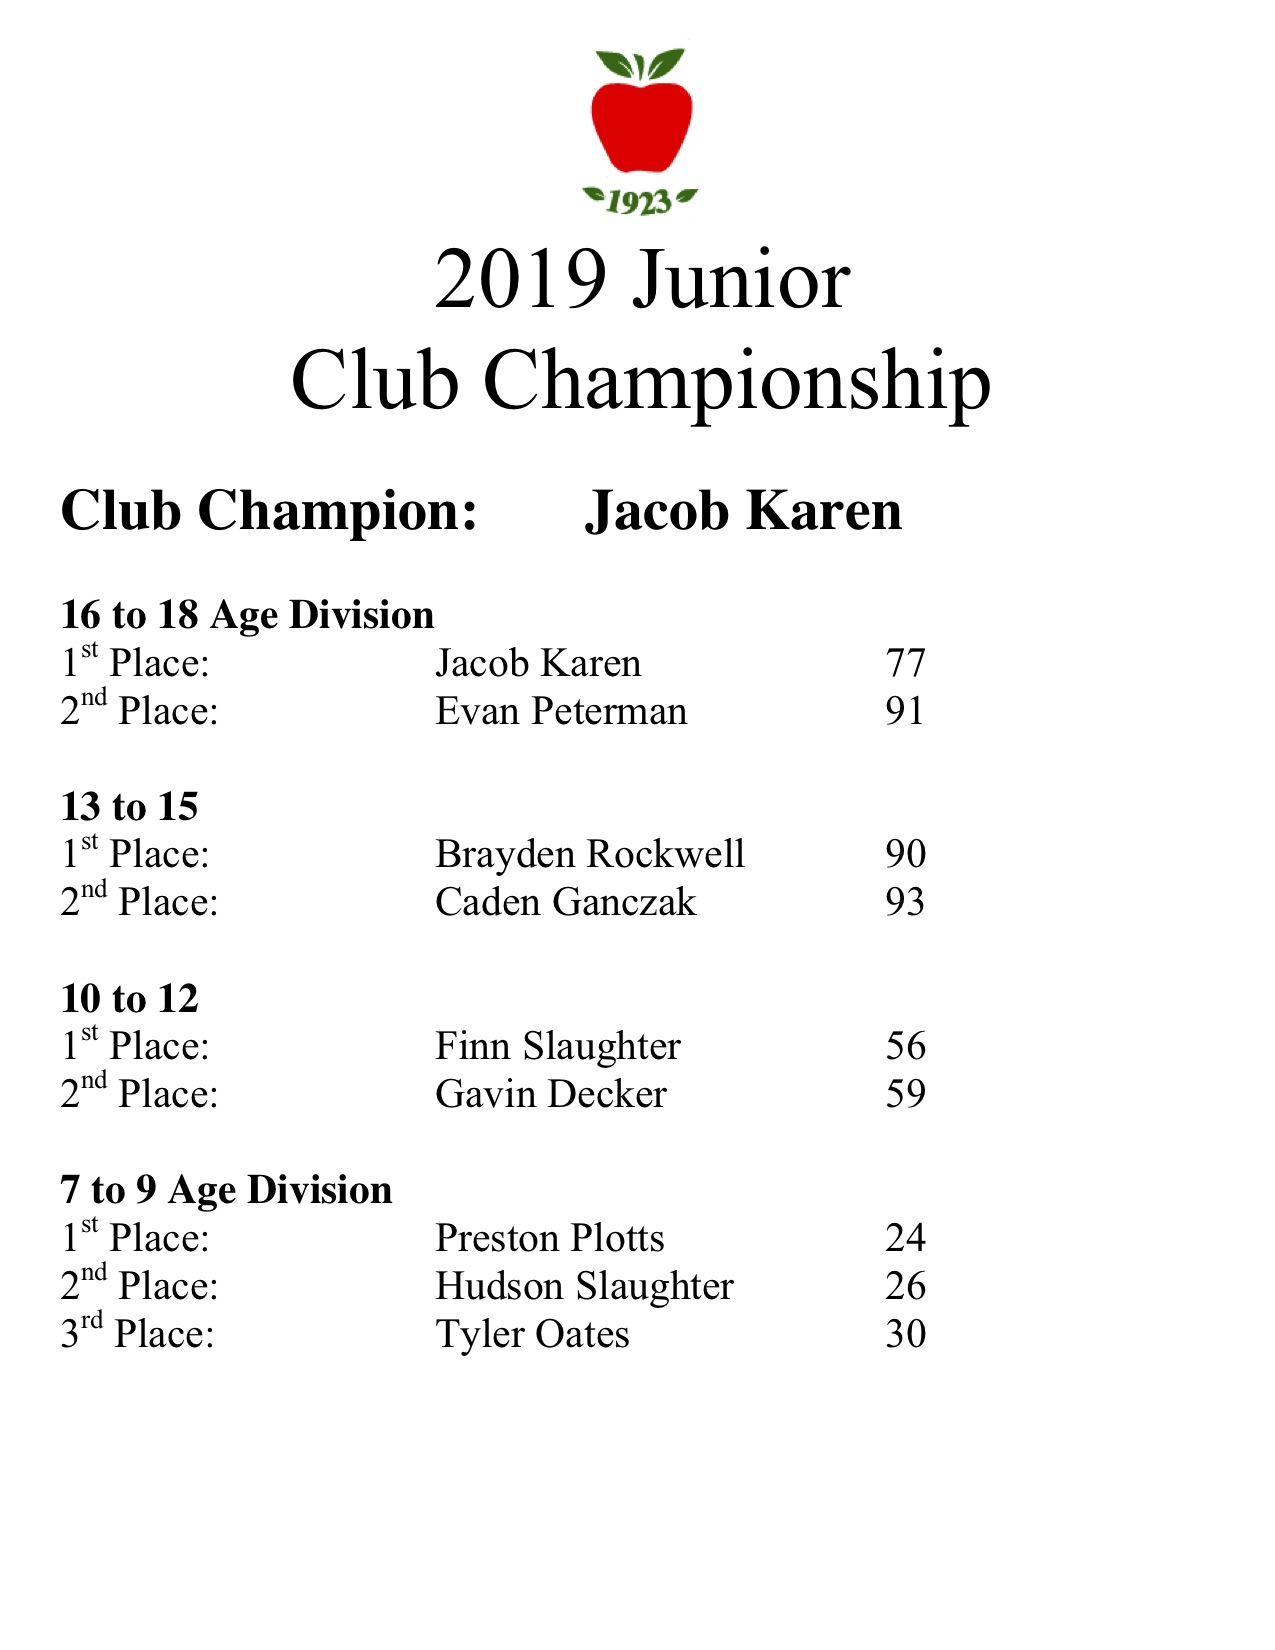 2019 junior club championship results.jpg